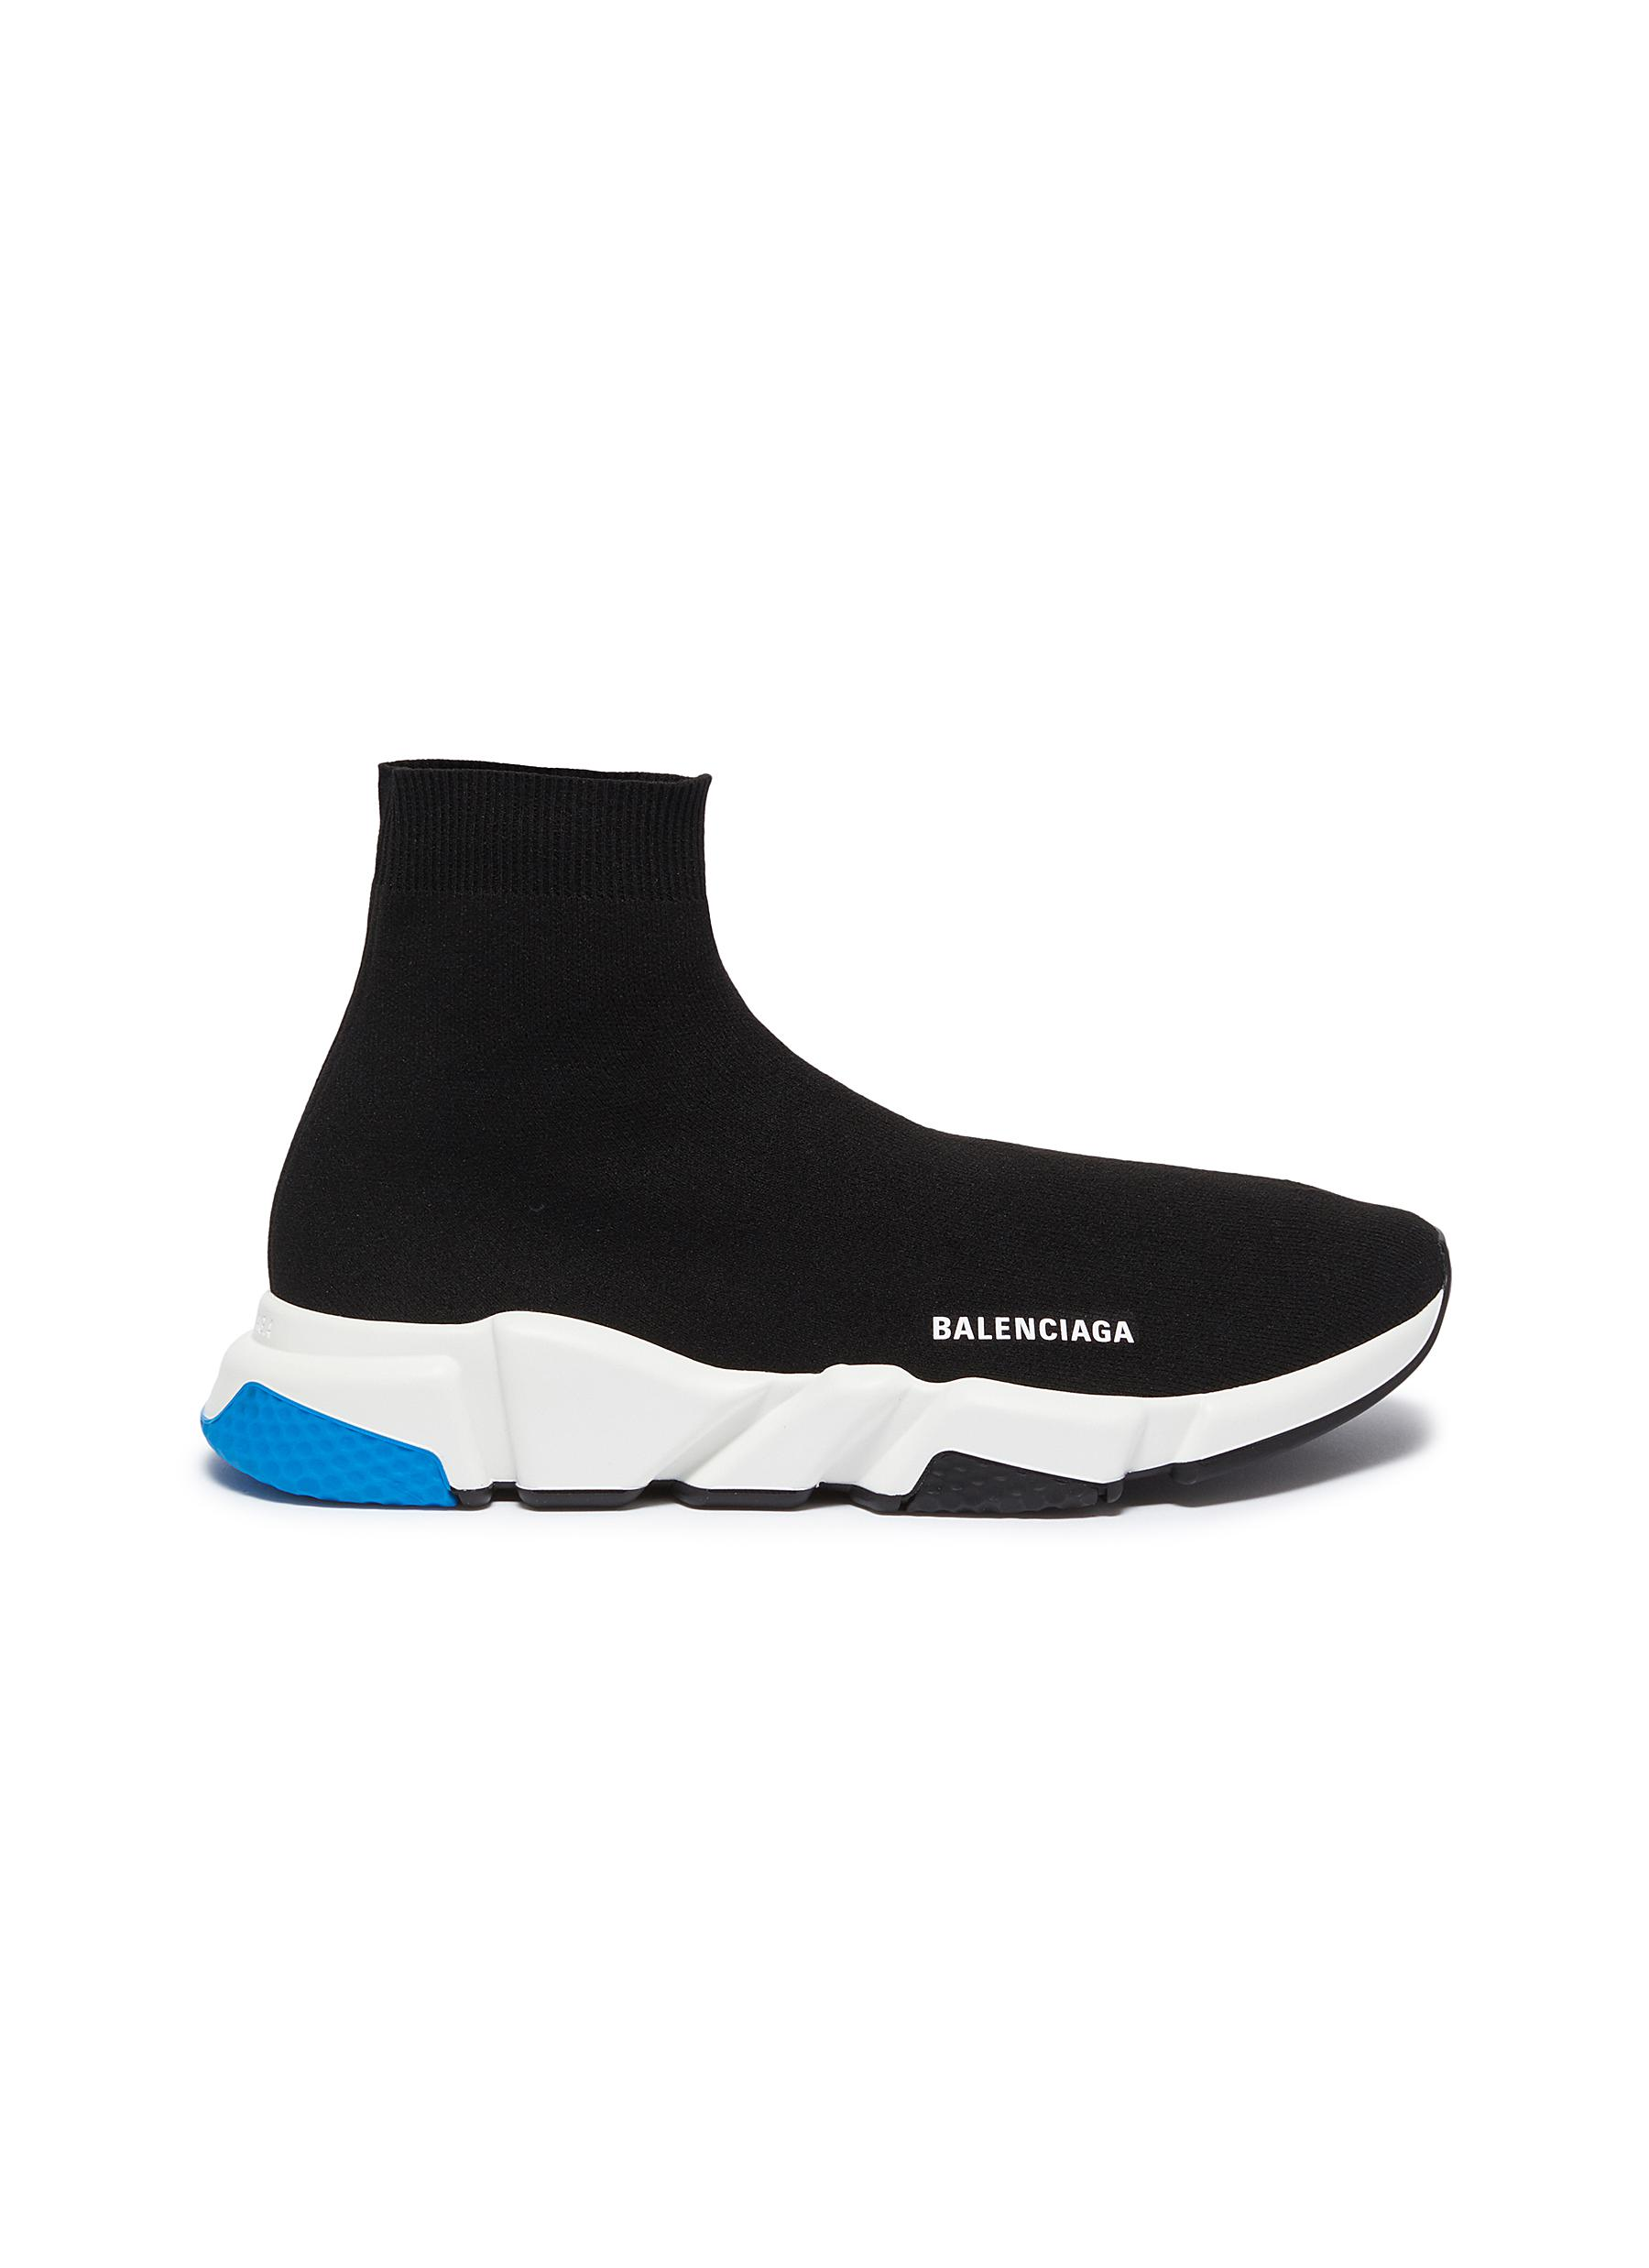 Balenciaga Sneakers 'Speed' knit slip on sneakers